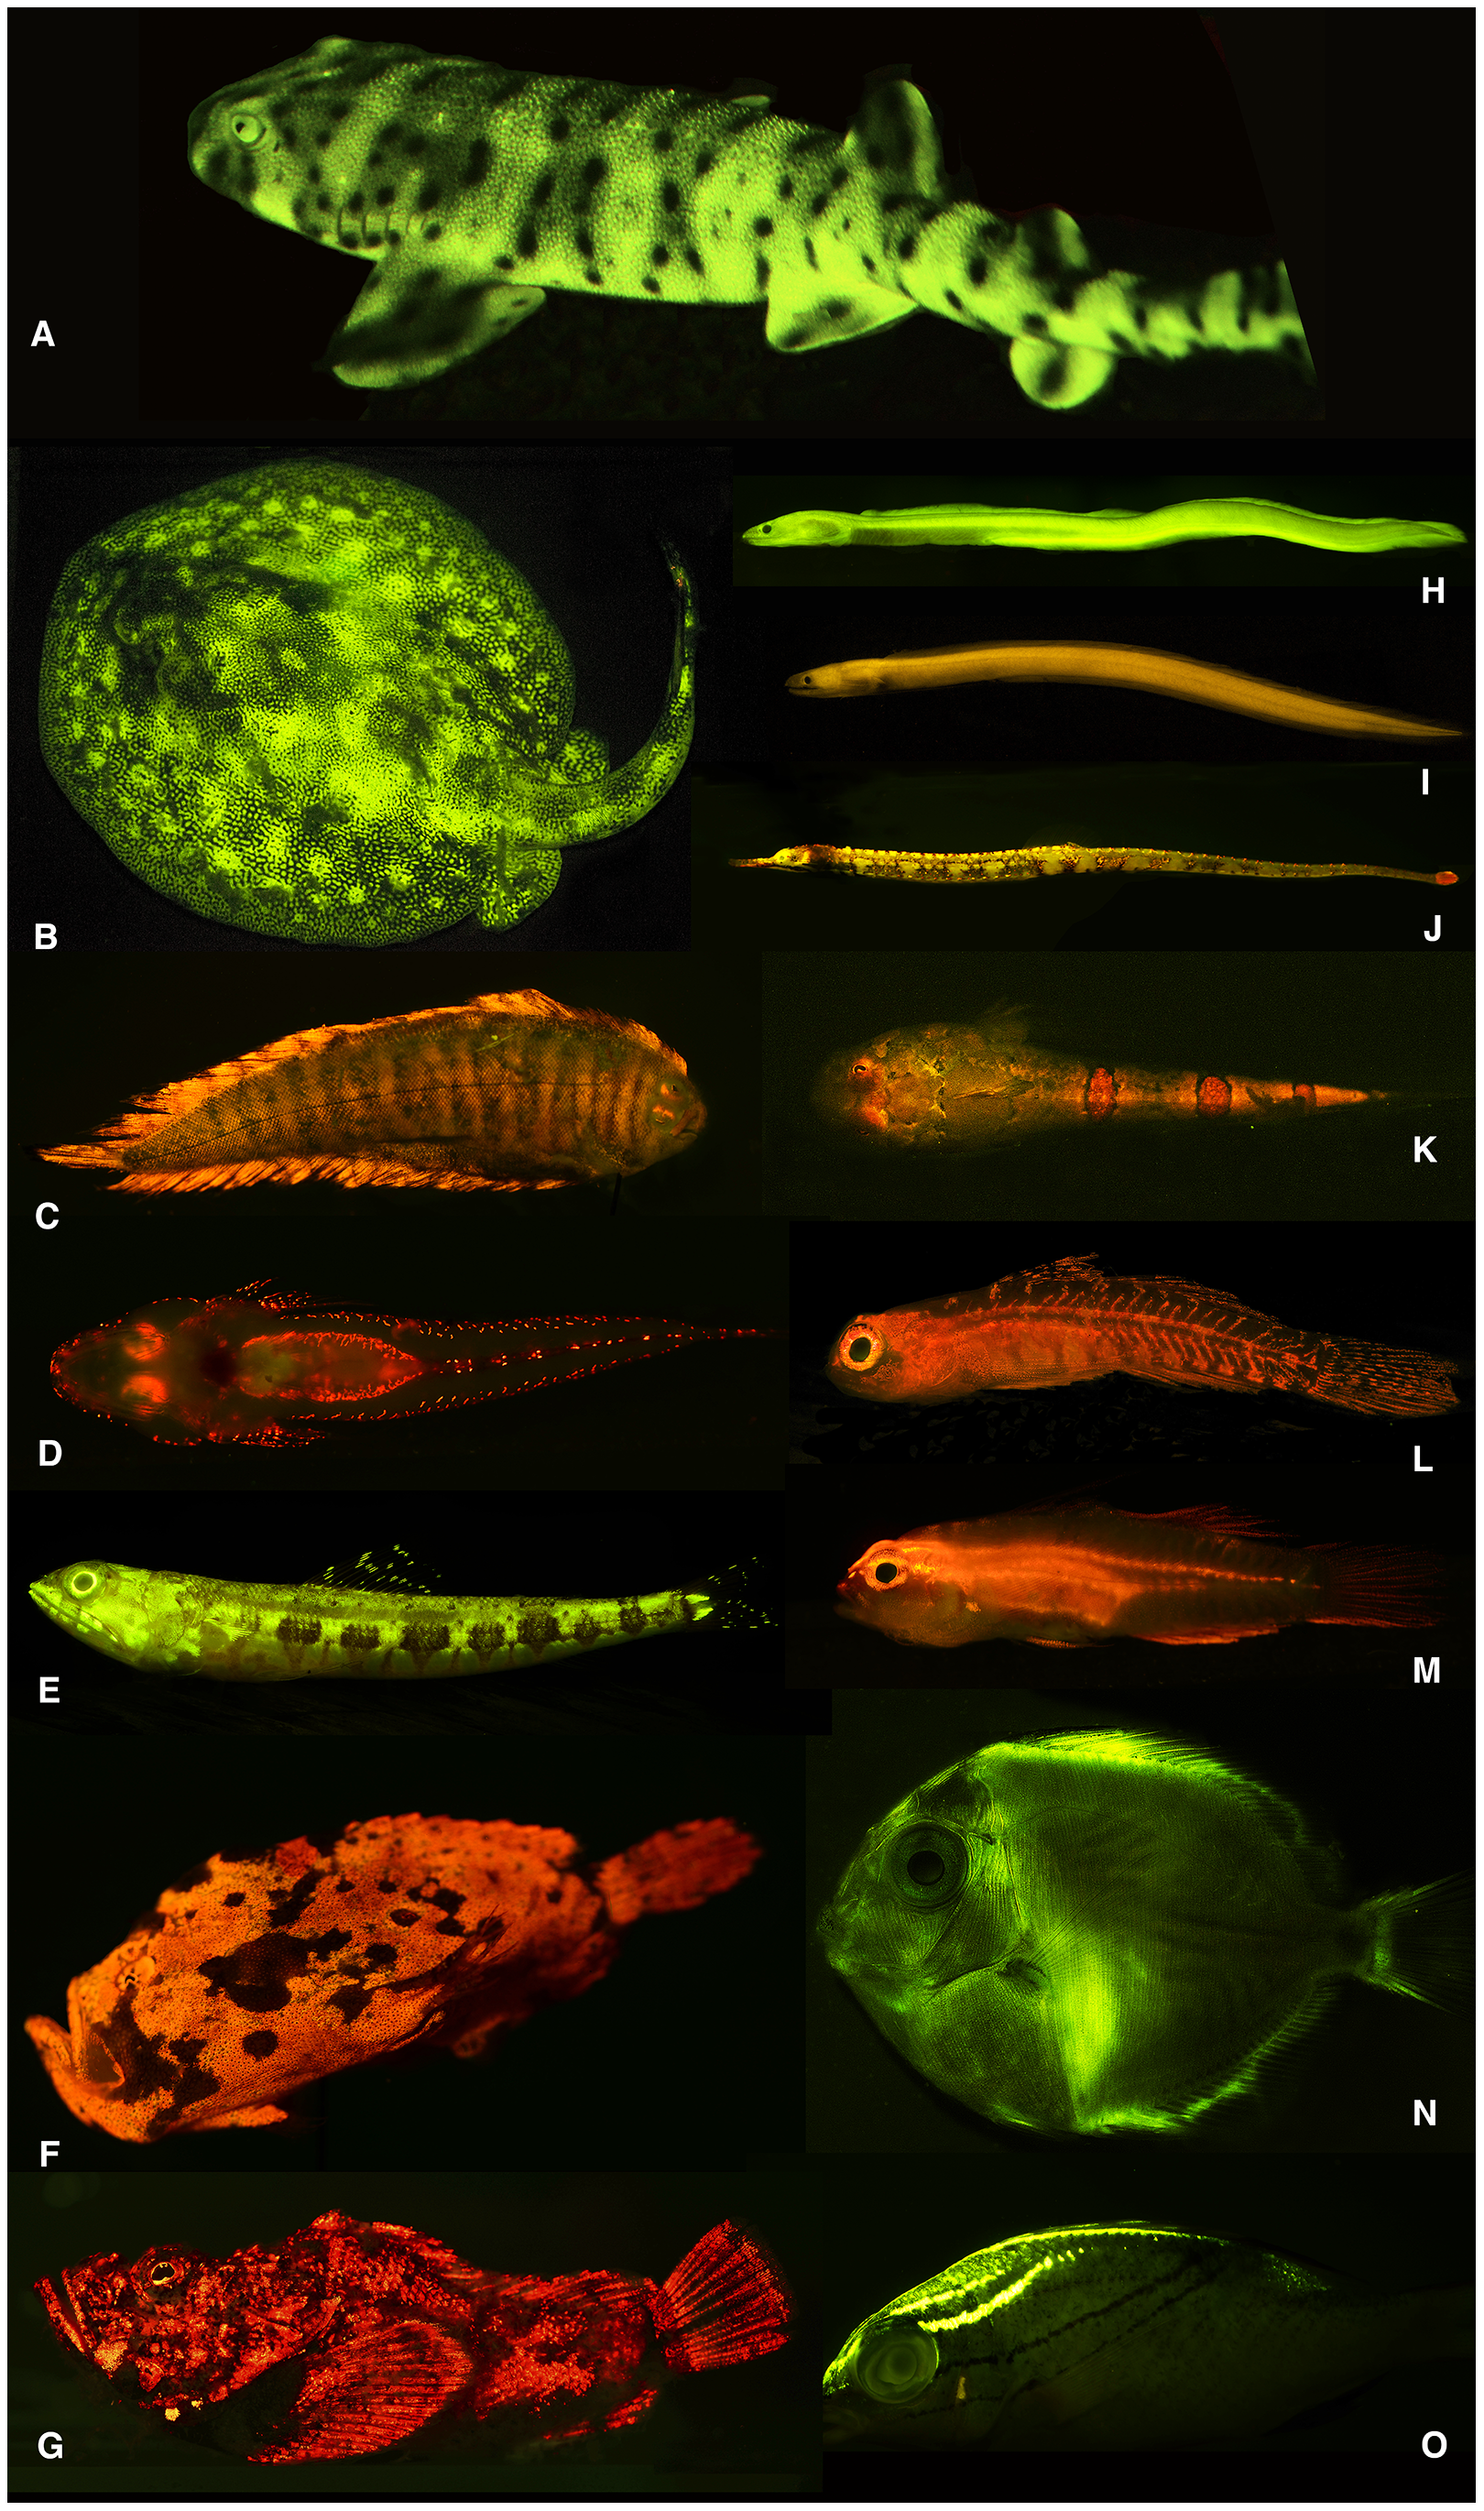 Diversity of fluorescent patterns and colors in marine fishes - journal.pone.0083259.g001.png